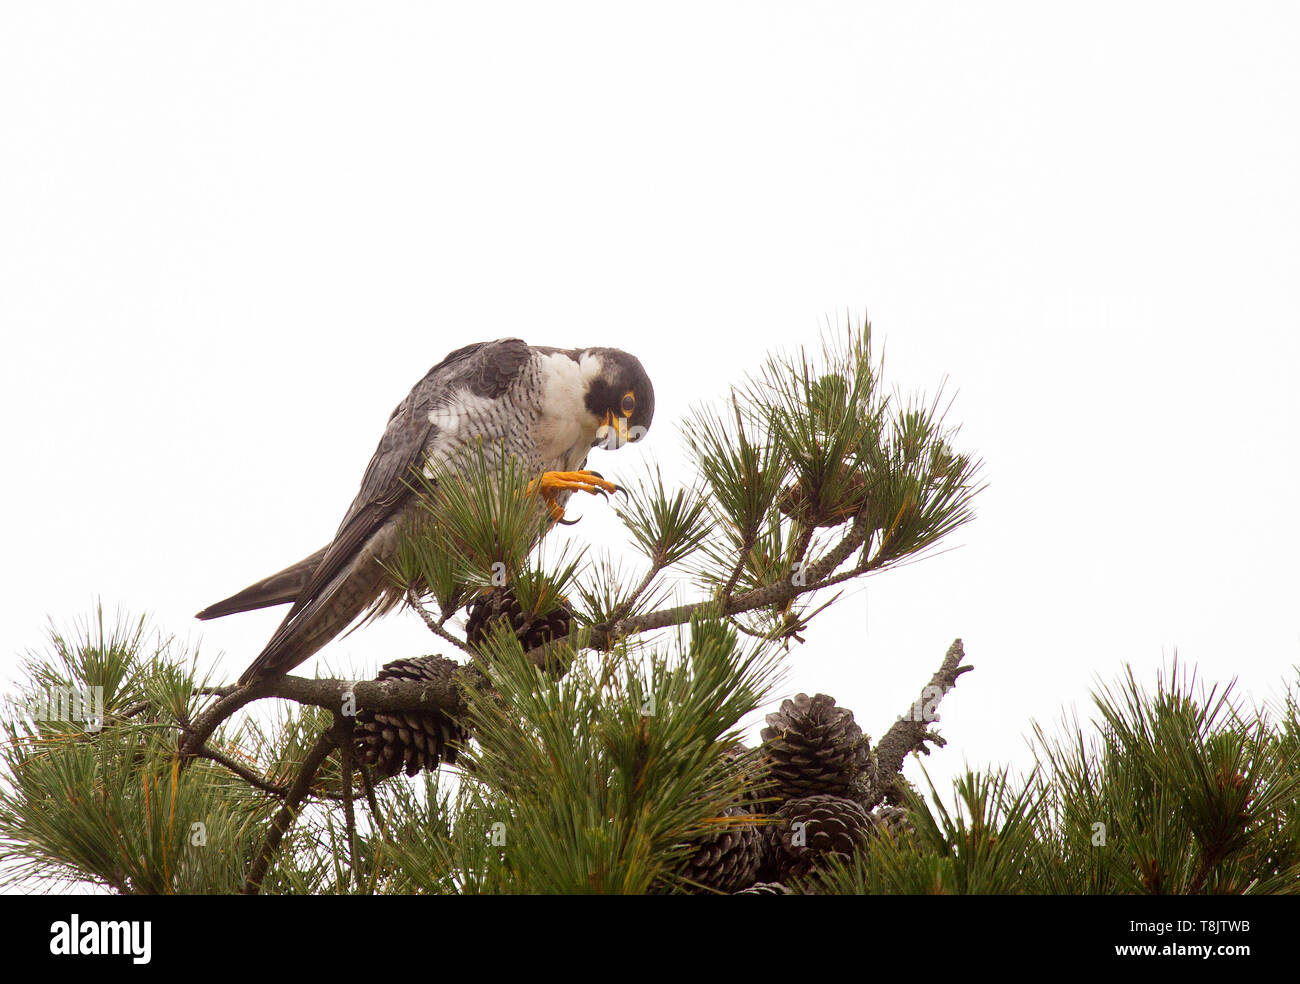 Peregrine Falcon Adult Perched on top of Pine Tree - Stock Image